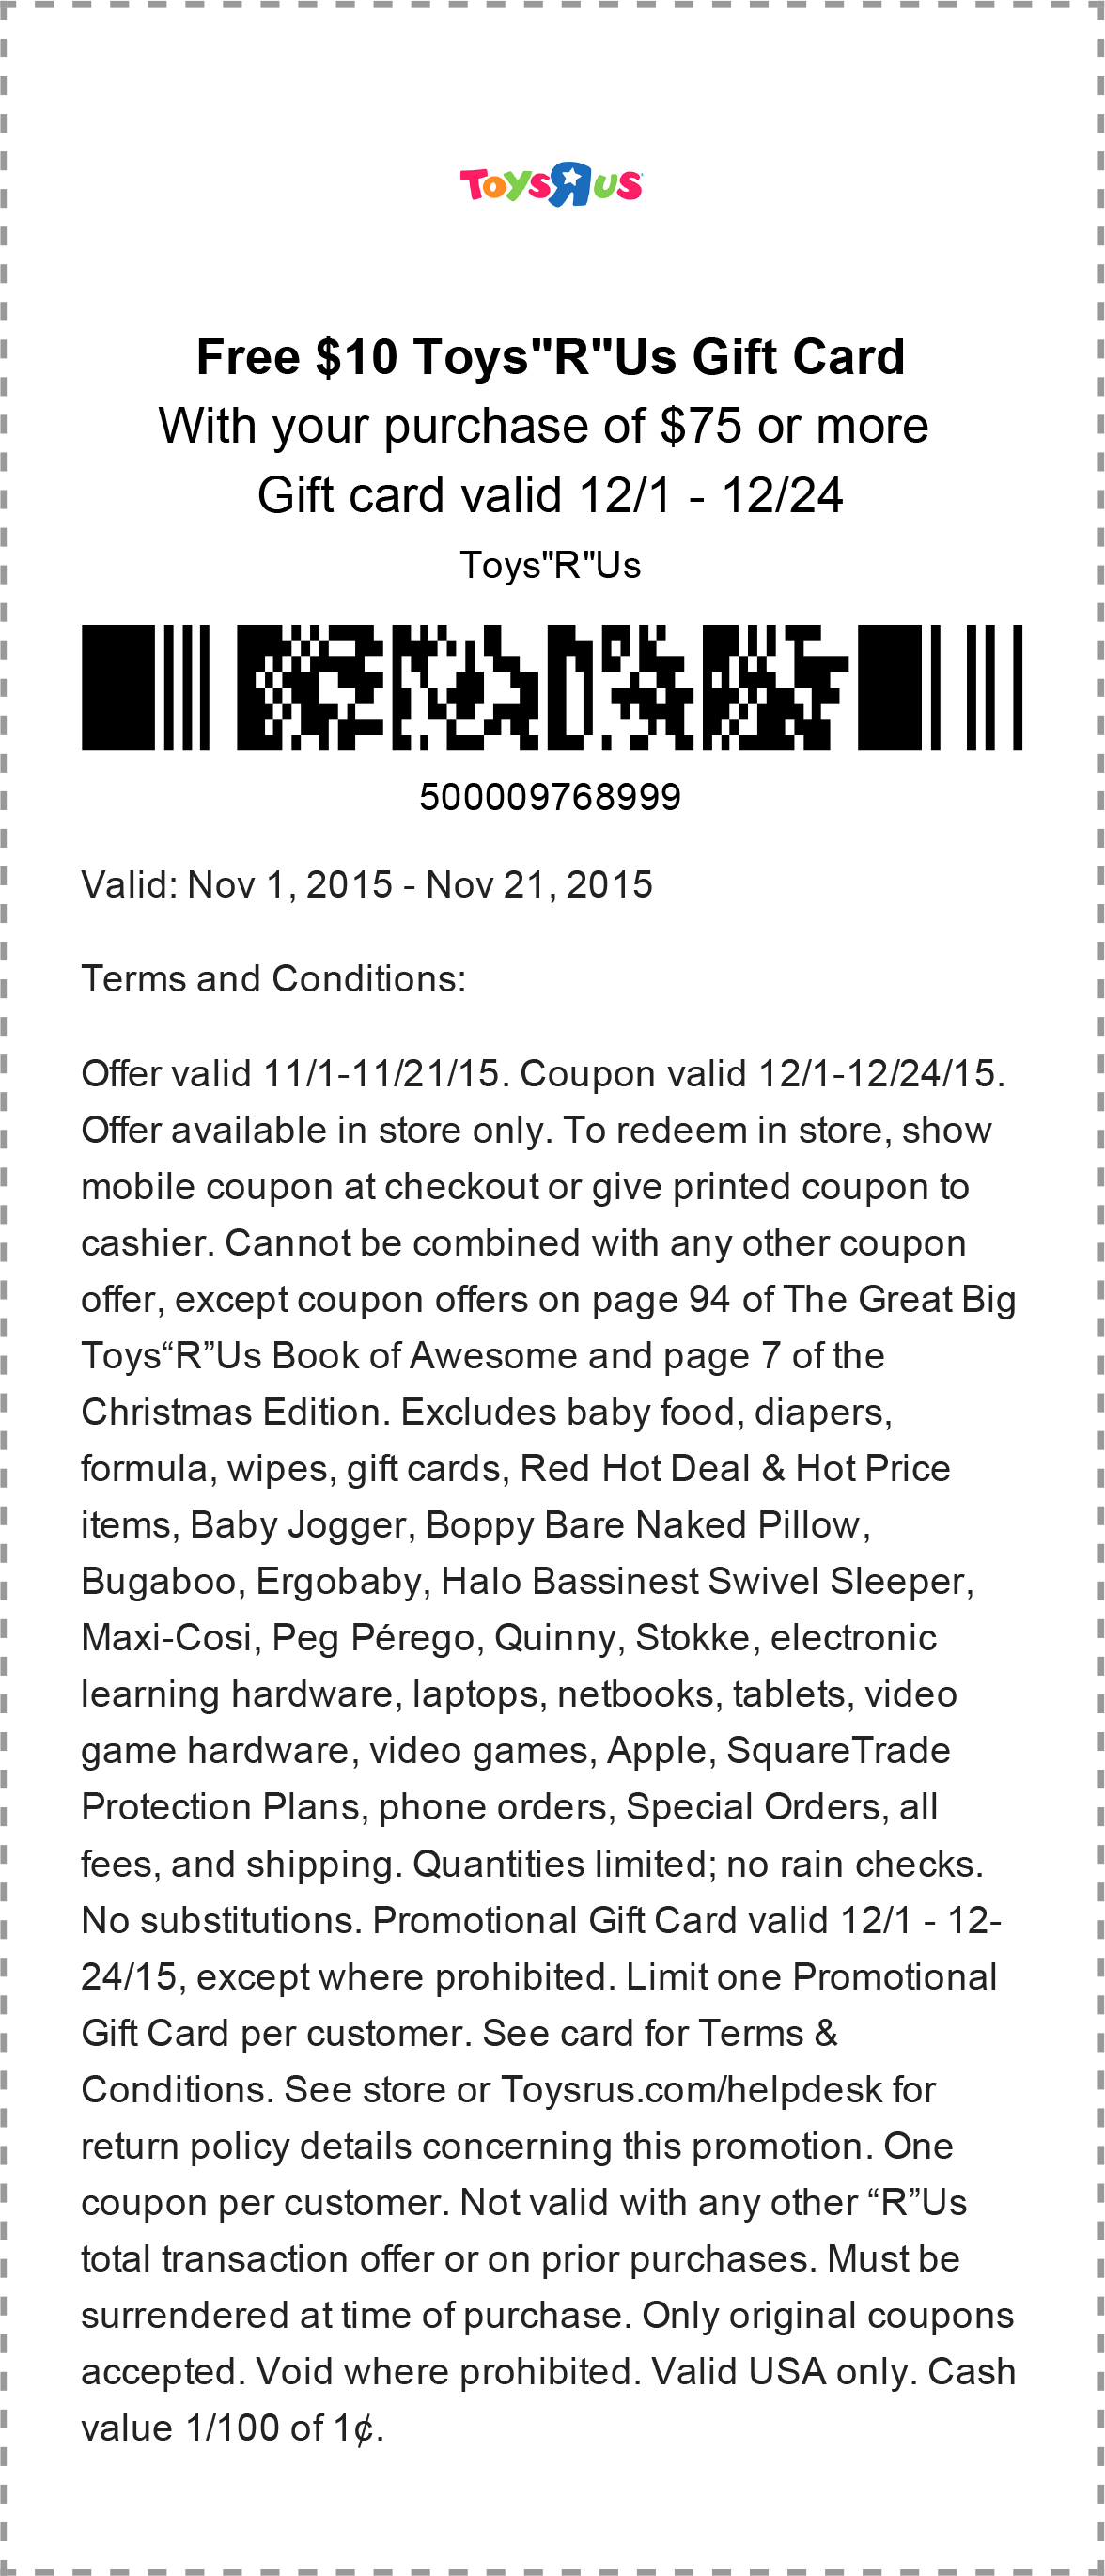 Toys R Us Coupon August 2018 $10 gift card free with $75 spent at Toys R Us